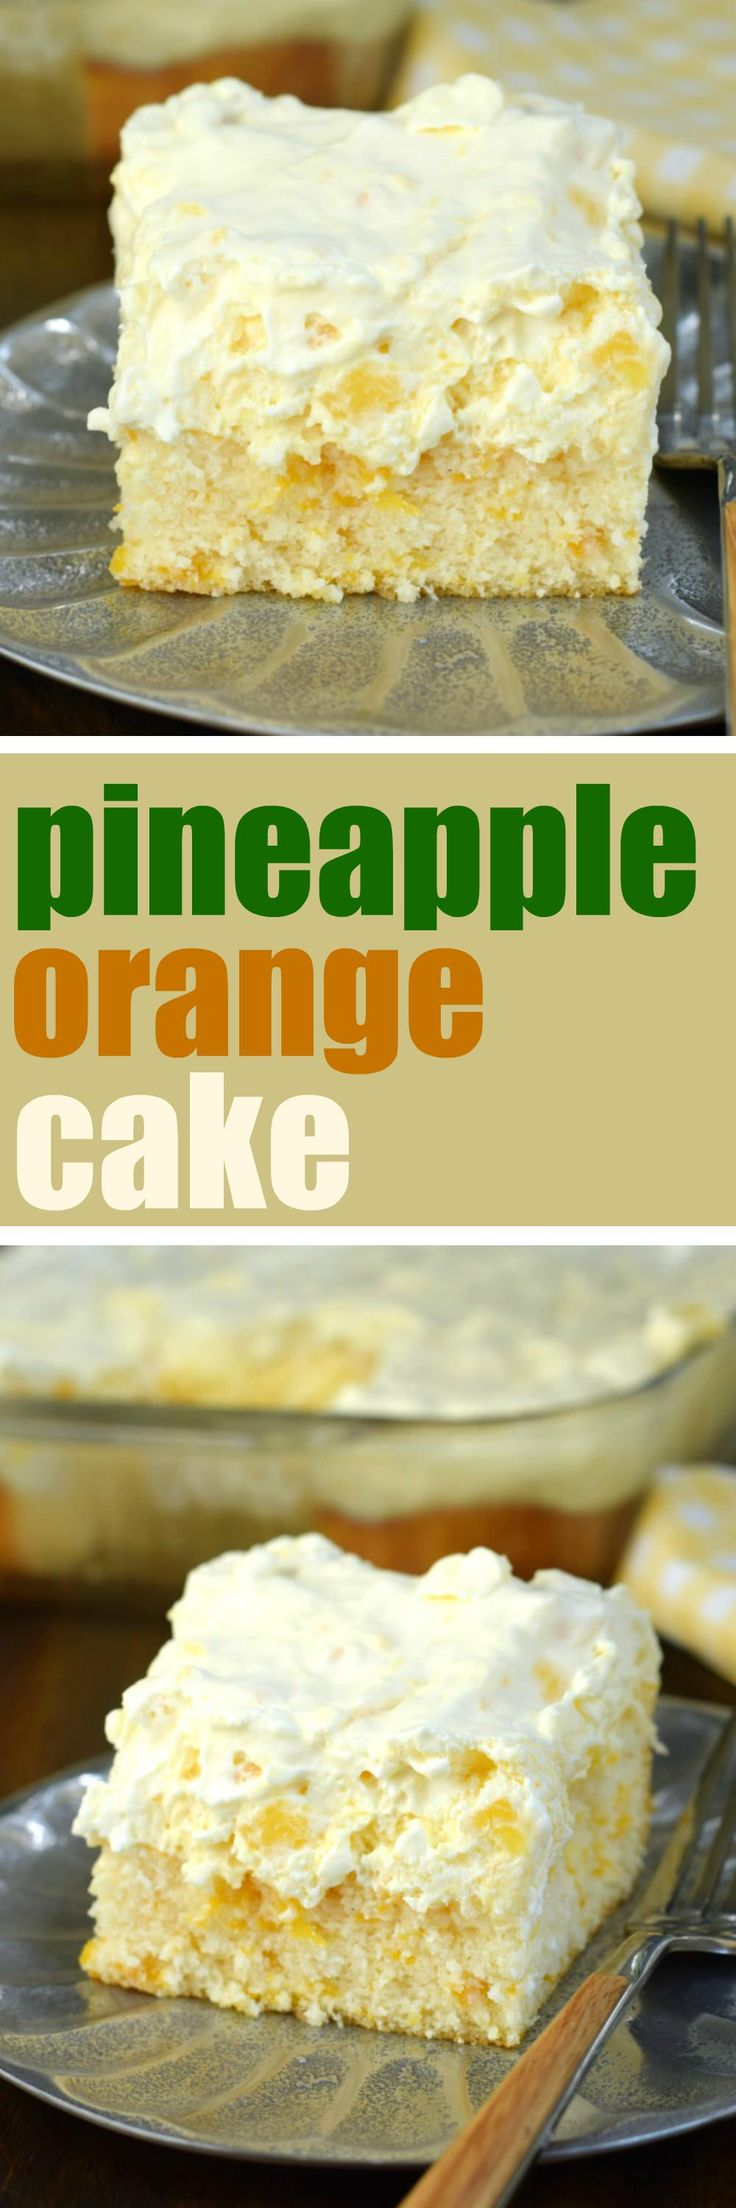 Pineapple Orange Cake is an easy, light dessert recipe that's nearly guilt free! You'll love the refreshing, moist orange cake topped with creamy pineapple flavored frosting!